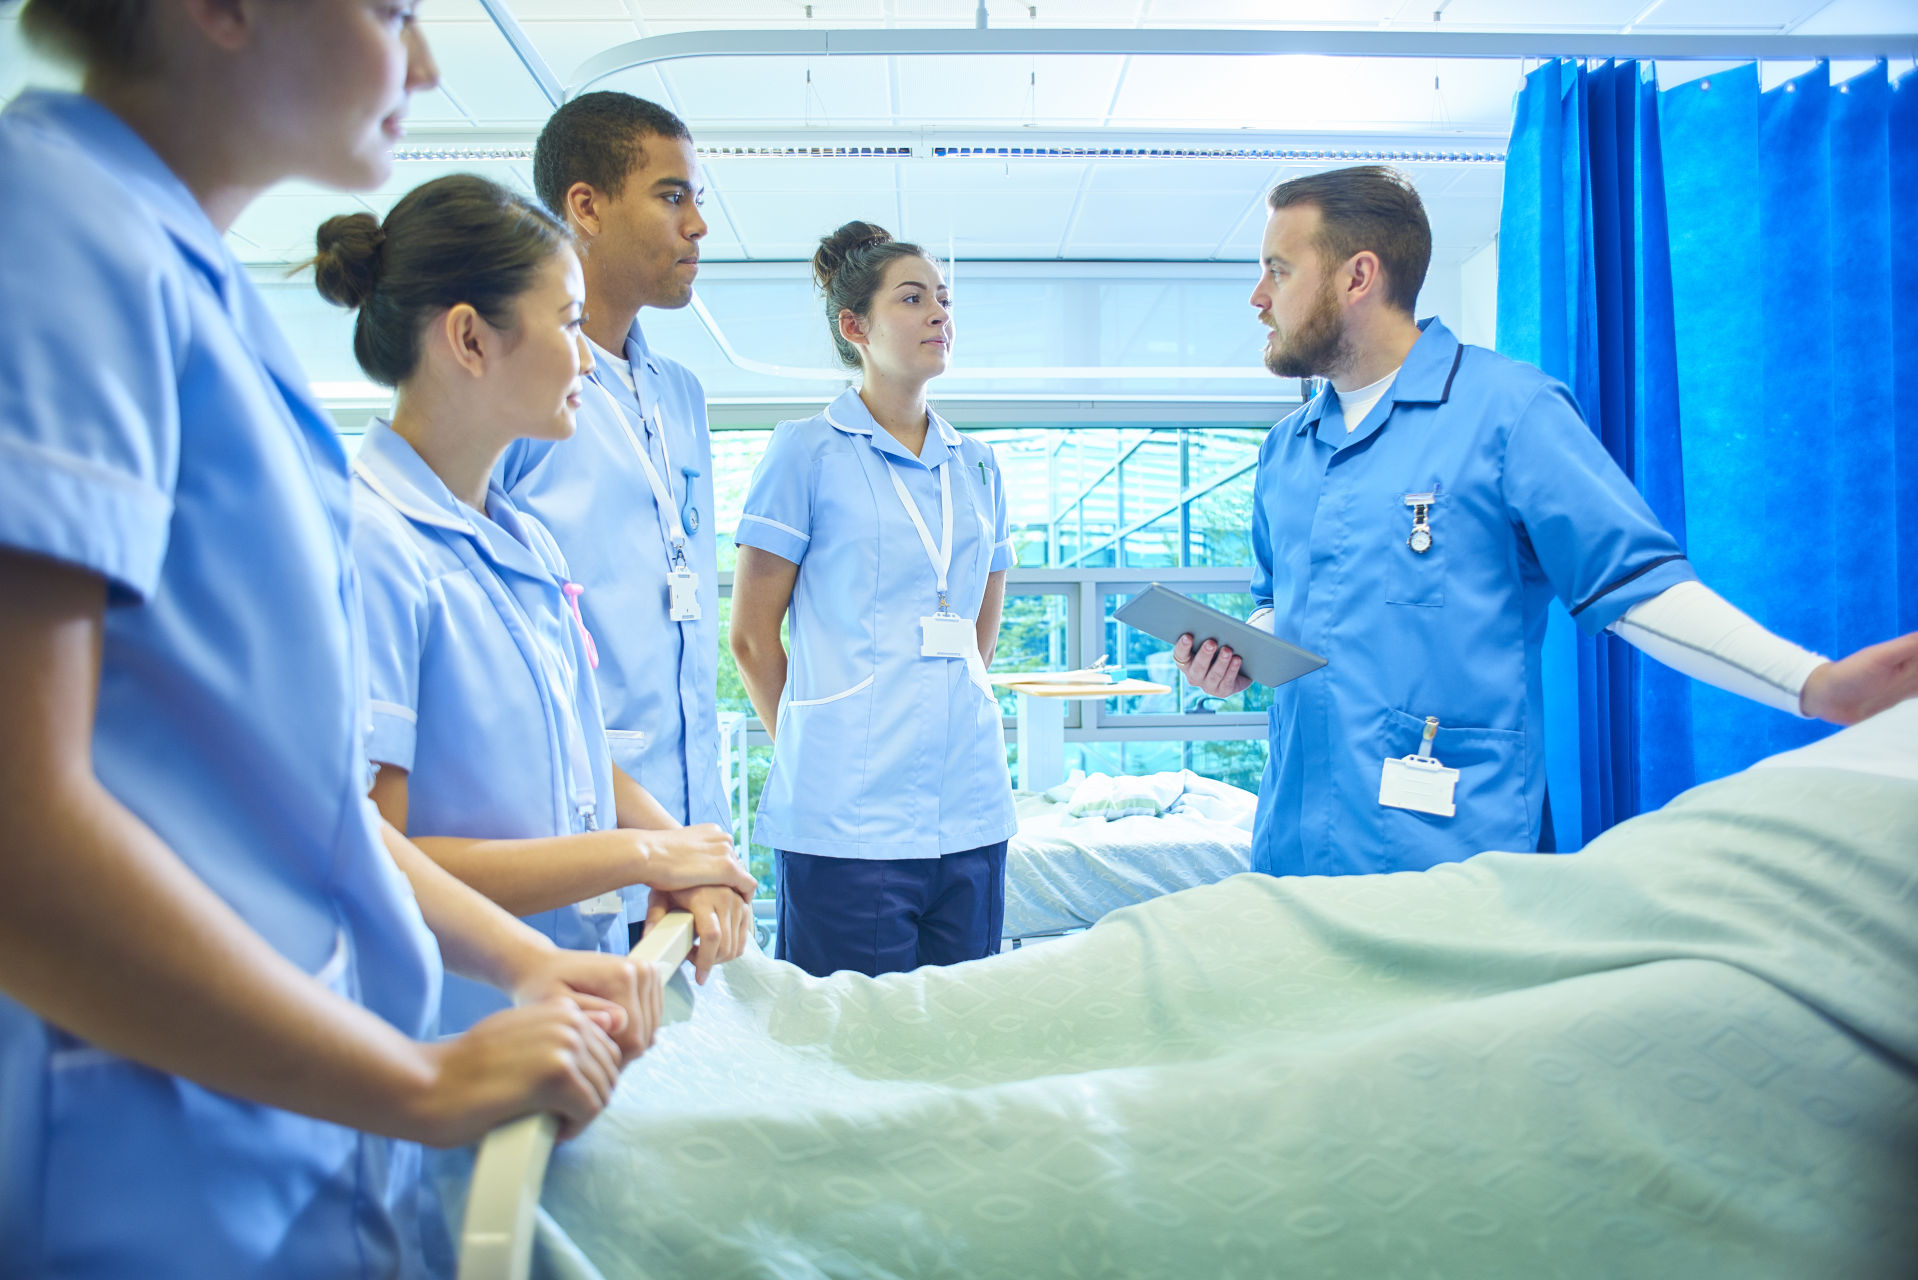 image of students around hospital bed